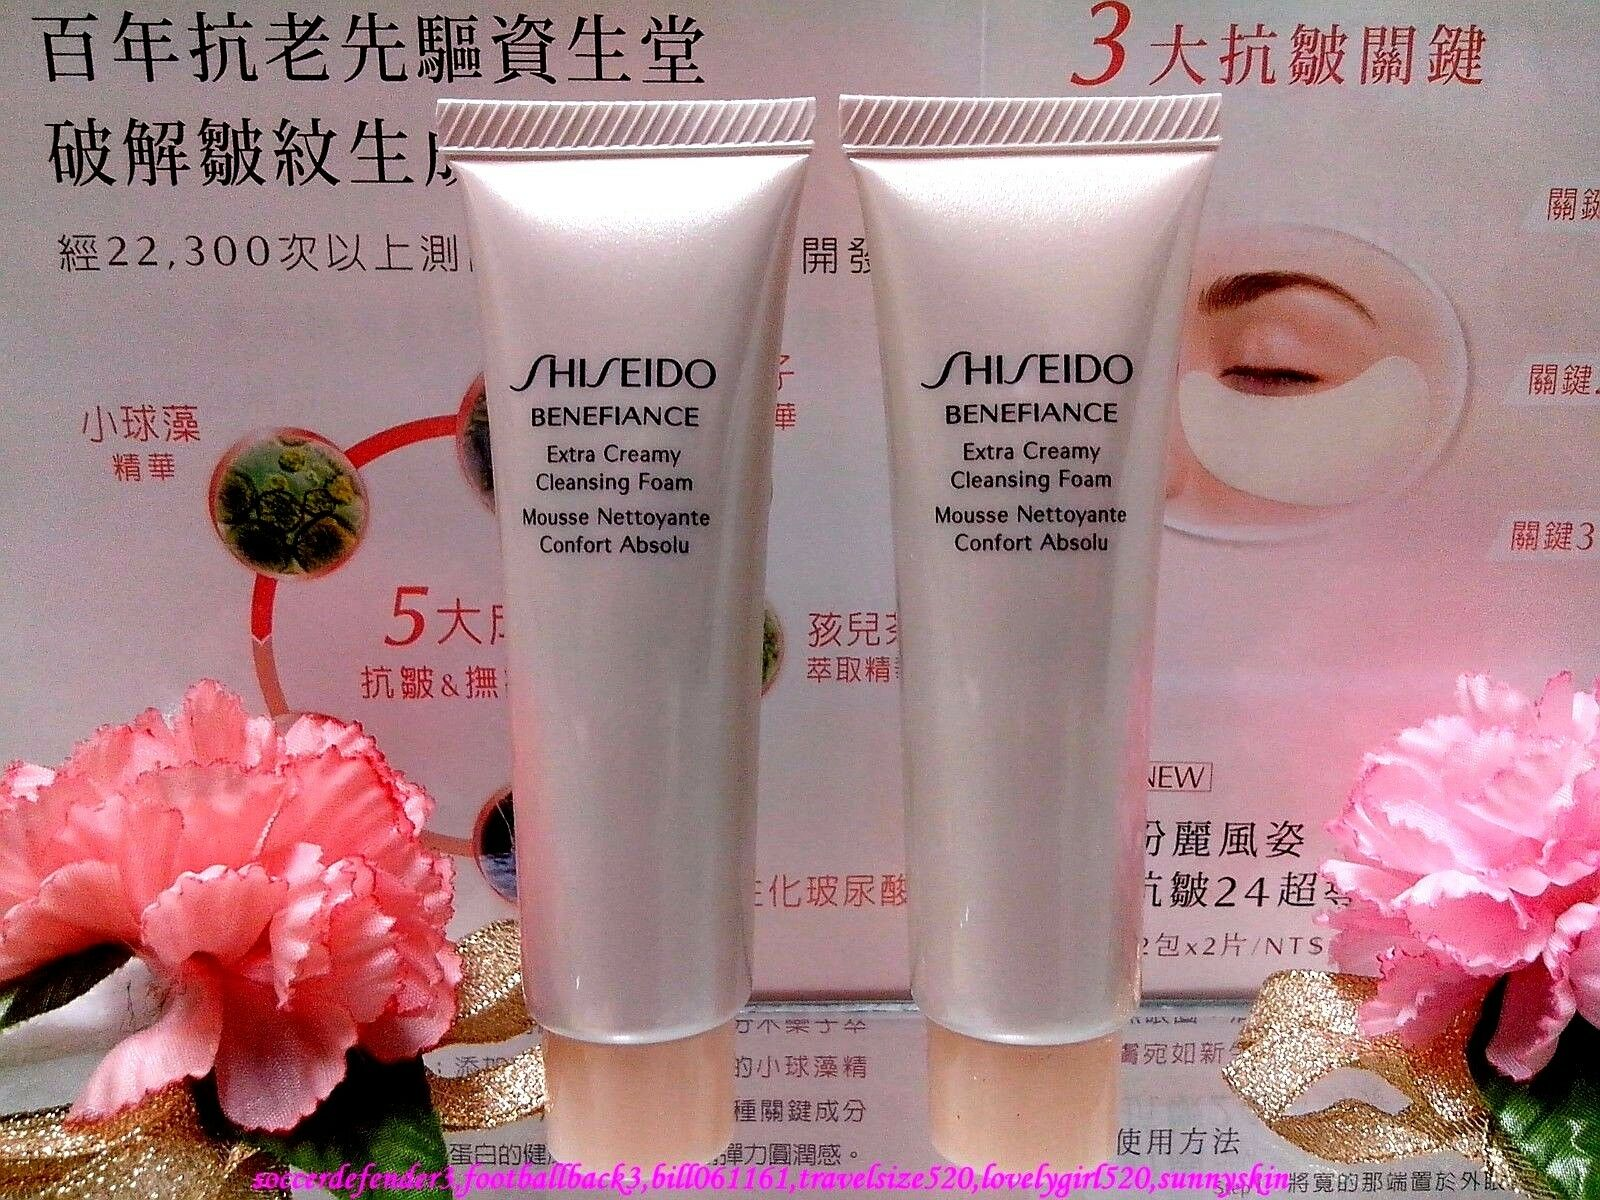 Benefiance Extra Creamy Cleansing Foam by Shiseido #4